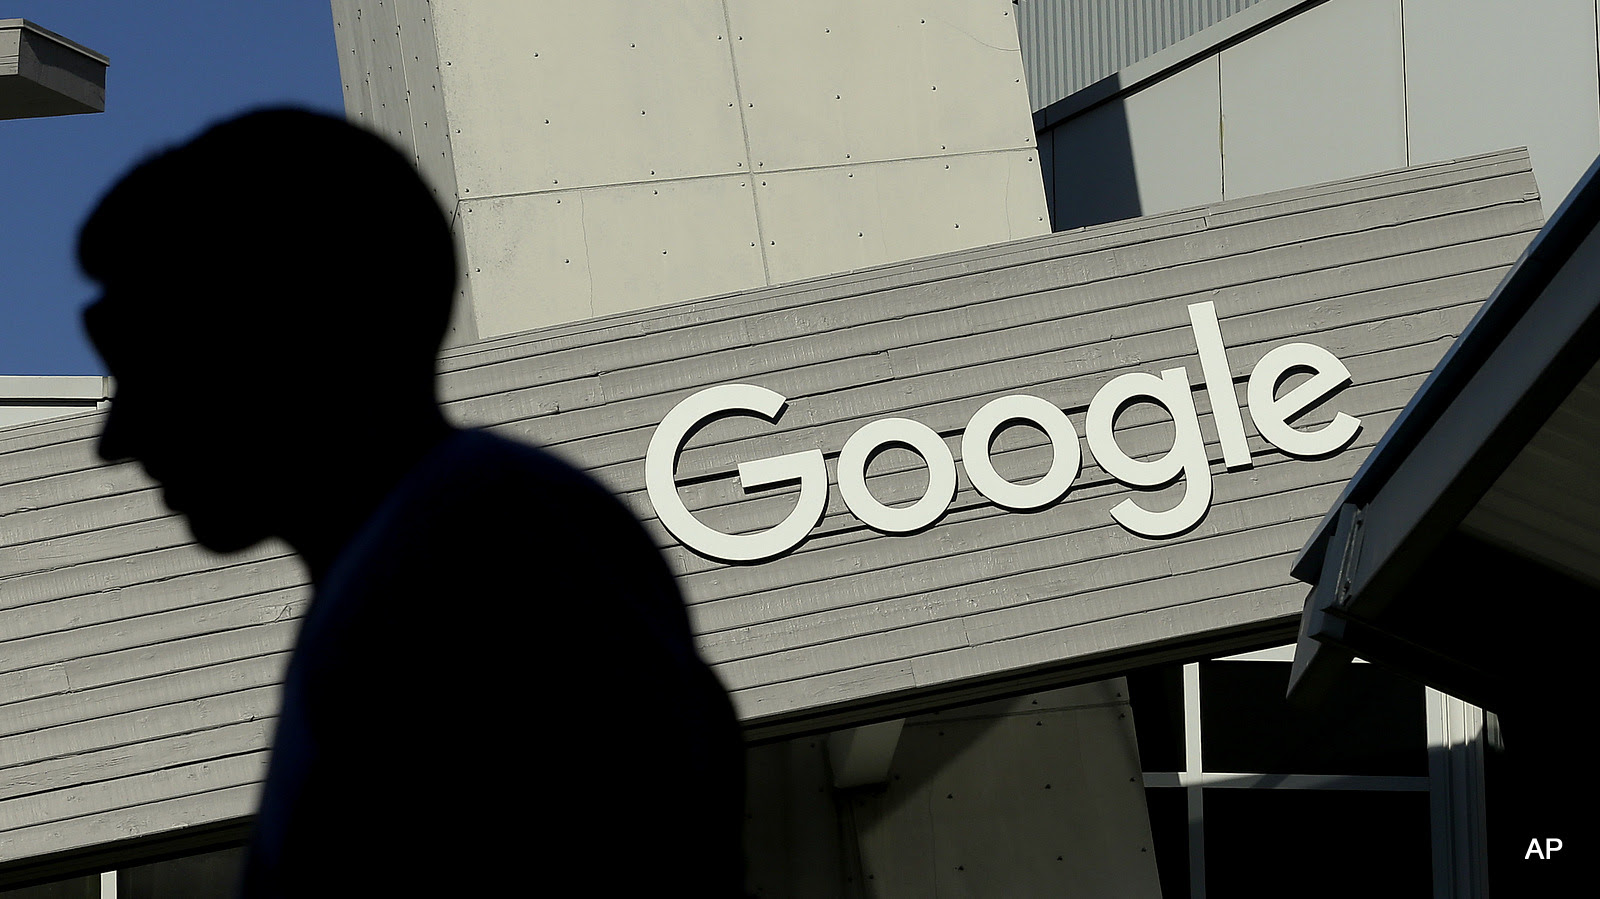 A man walks past a building on the Google campus in Mountain View, Calif. Google recently noted 'Usage of our services have increased every year, and so have the user data request number.'